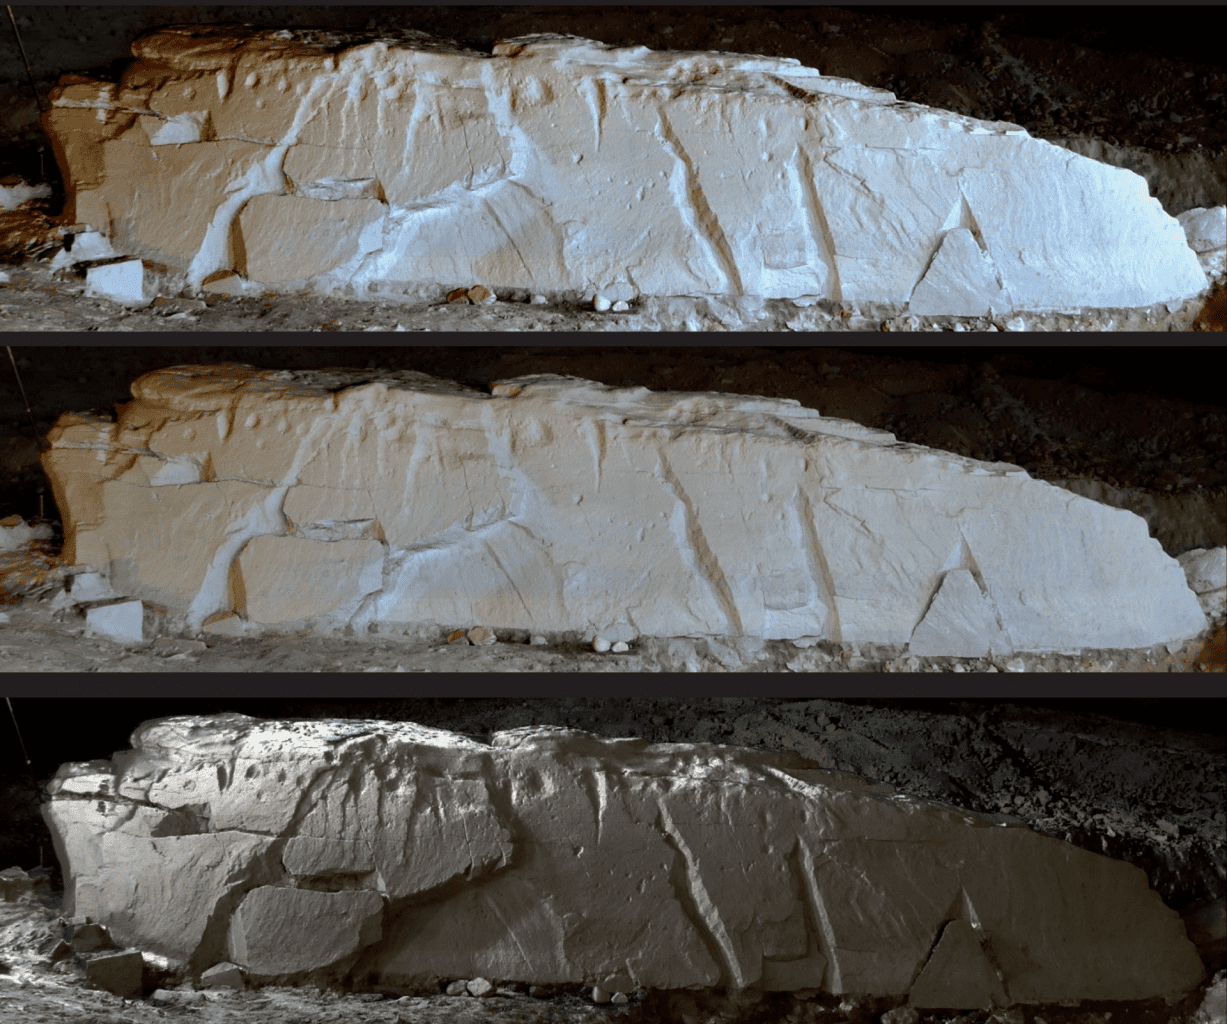 Several shots of the massive megalithic slab found in France. Credit: Julie Boudry, Inrap